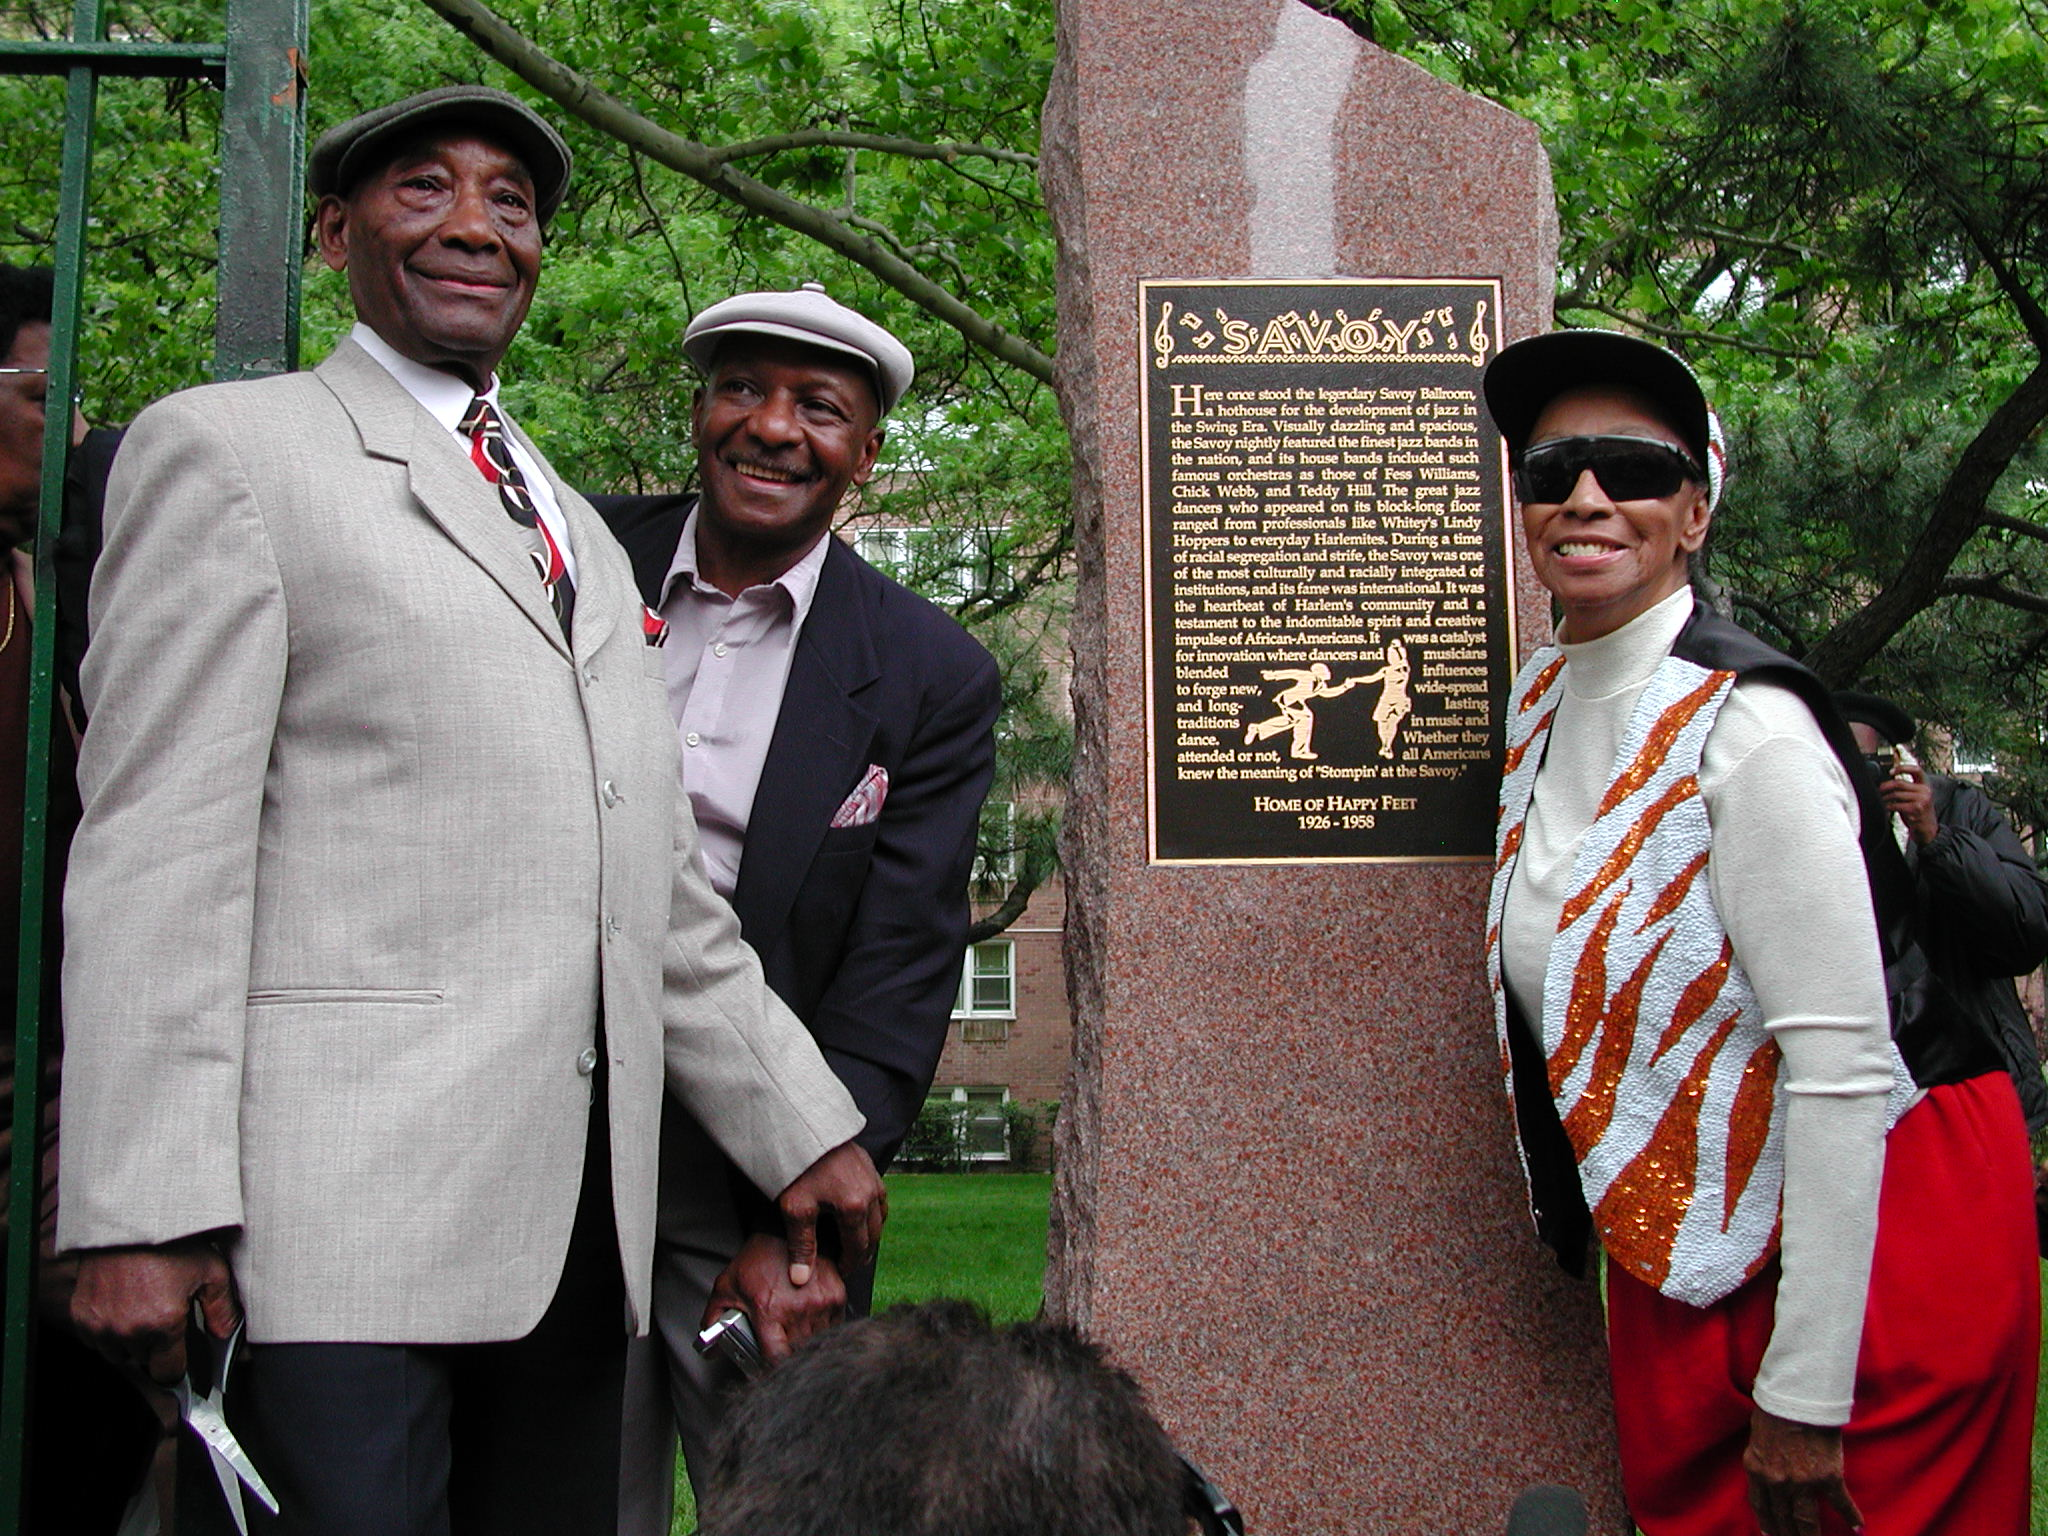 Frankie Manning, Chazz Young, and Norma Miller at the site of the Savoy Plaque, 2002